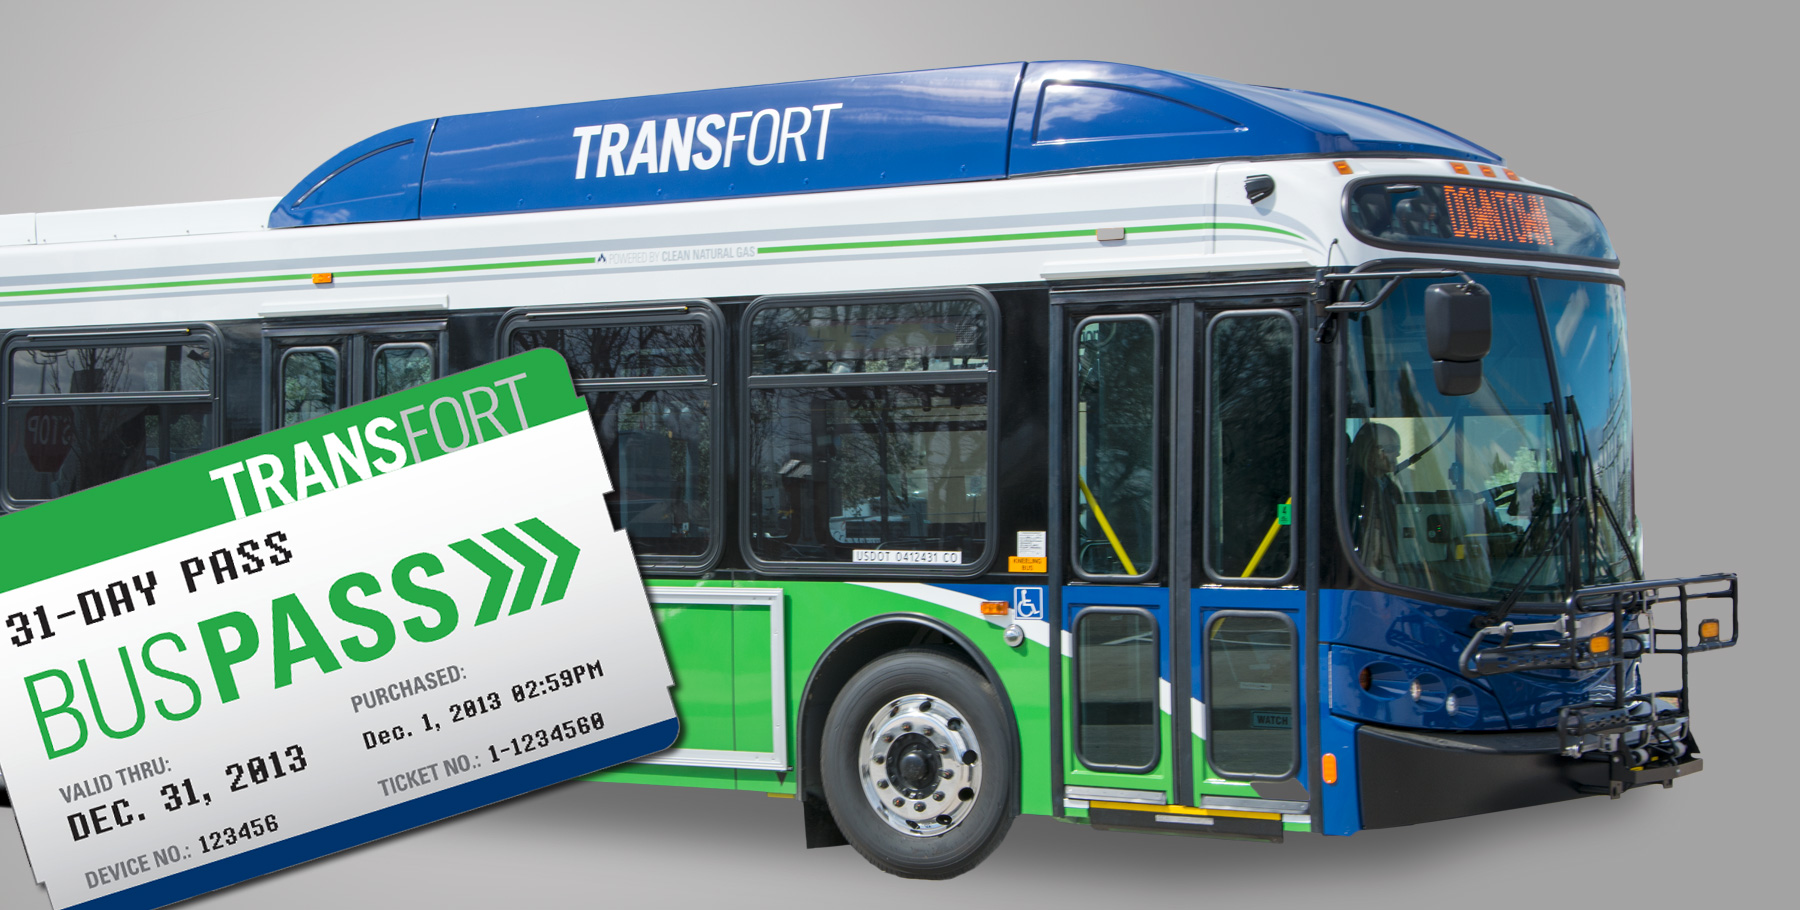 Transfort Bus Design & Pass